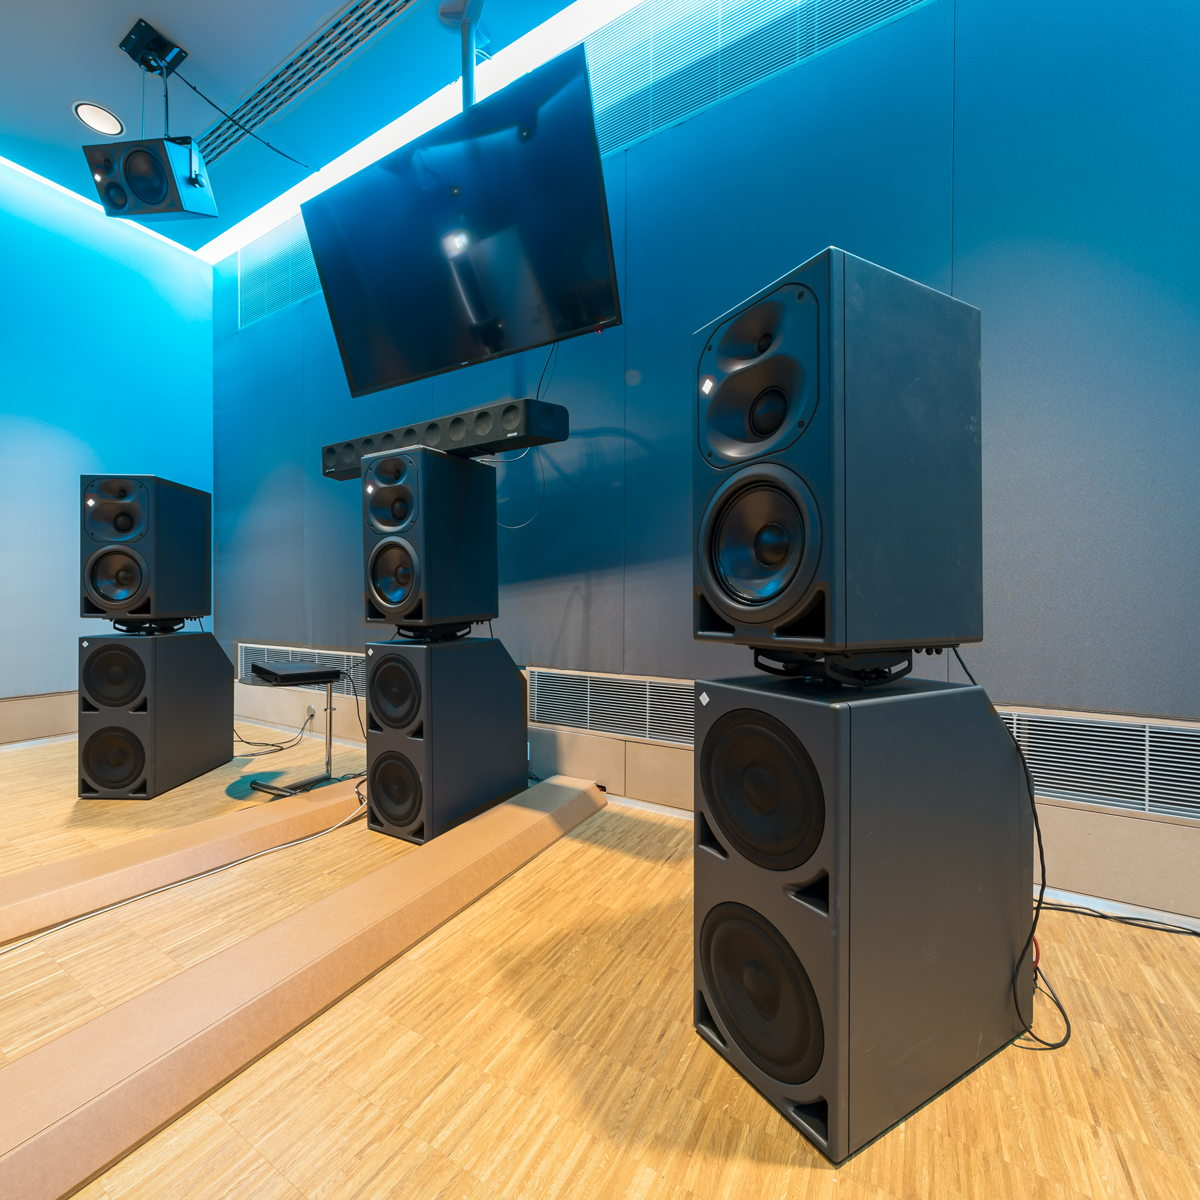 The speakers placed at ear level in the 3D control room include three Neumann KH 420 tri-amplified mid-field studio monitors (L/C/R). The bass range (.1) is reproduced by three powerful Neumann KH 870 subwoofers